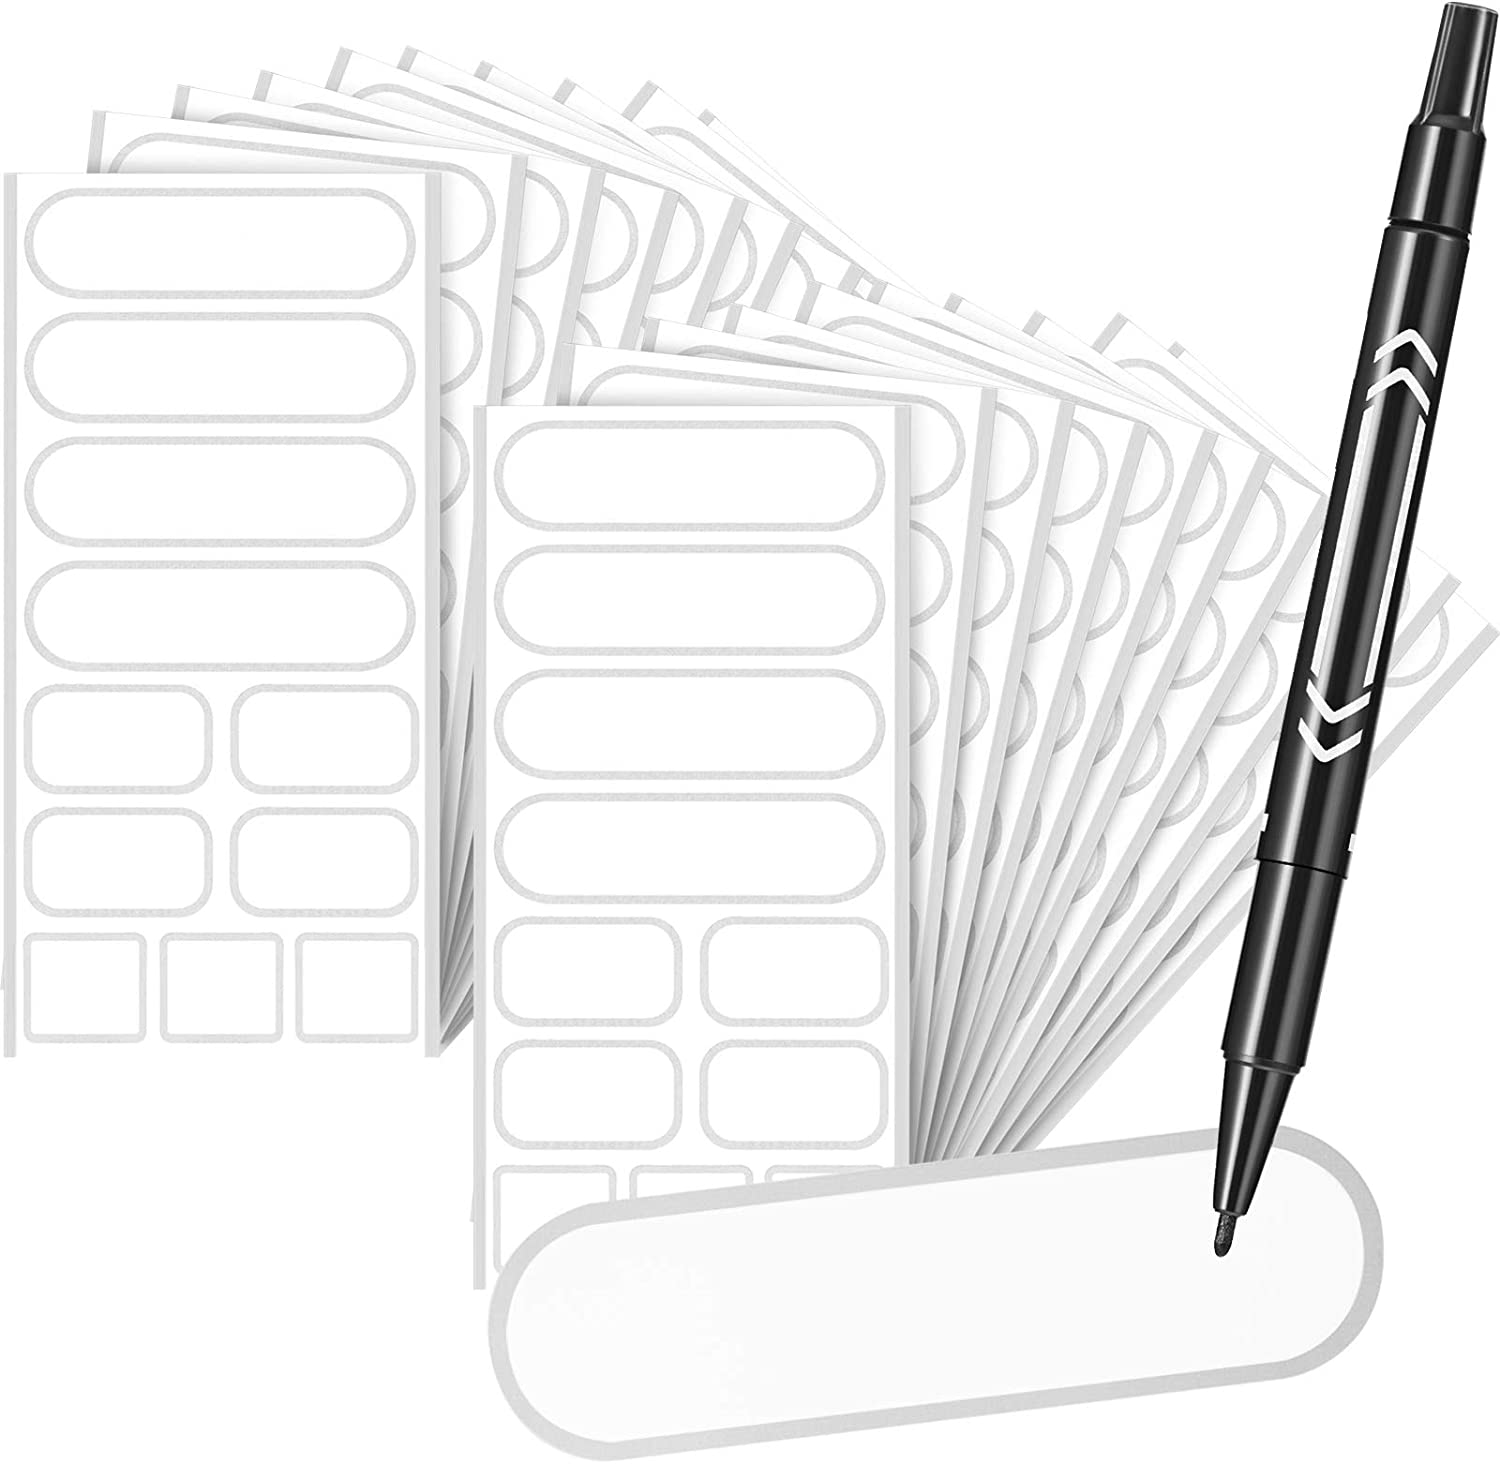 Removable Food Labels Stickers Waterproof Kitchen Labels for POP Food Storage, Home Organization with Marker Pen, 3 Sizes (Silver,264 Pieces)